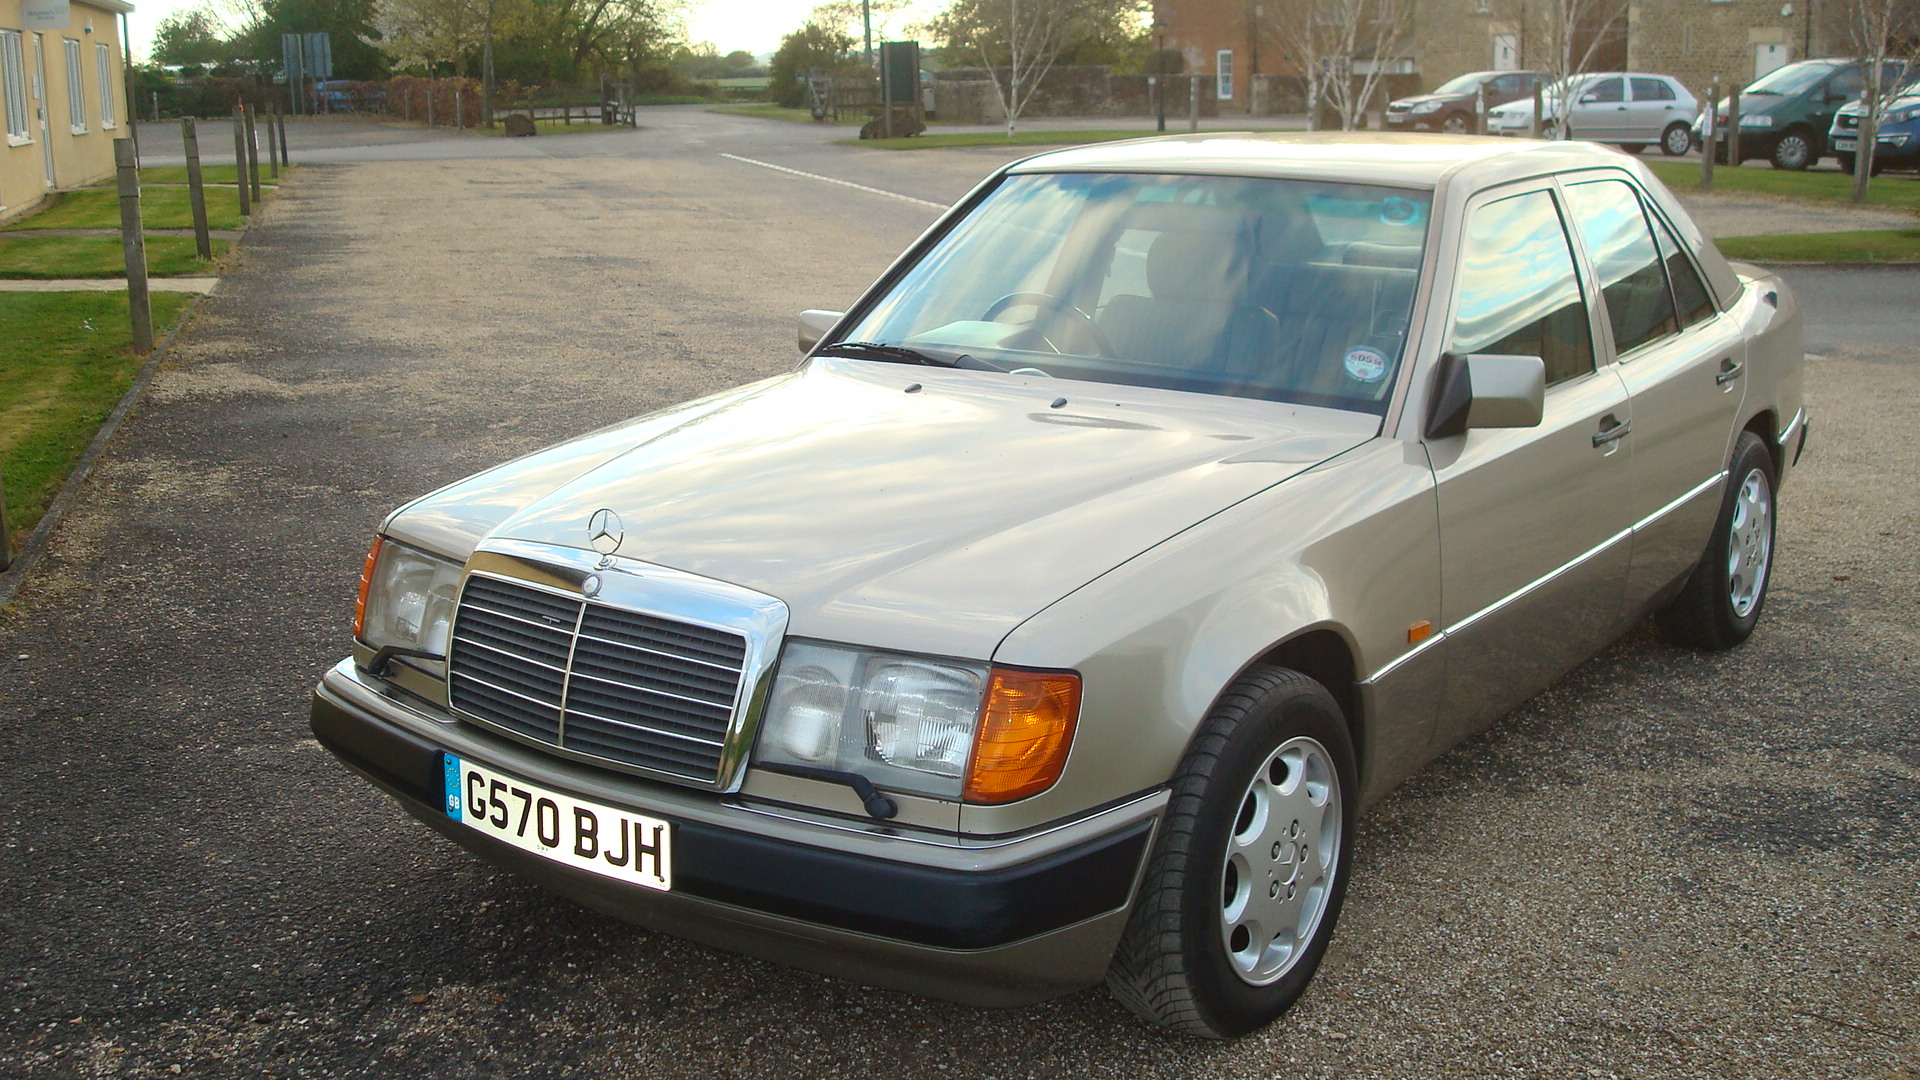 Mercedes benz w124 300e country classics country classics for What country makes mercedes benz cars